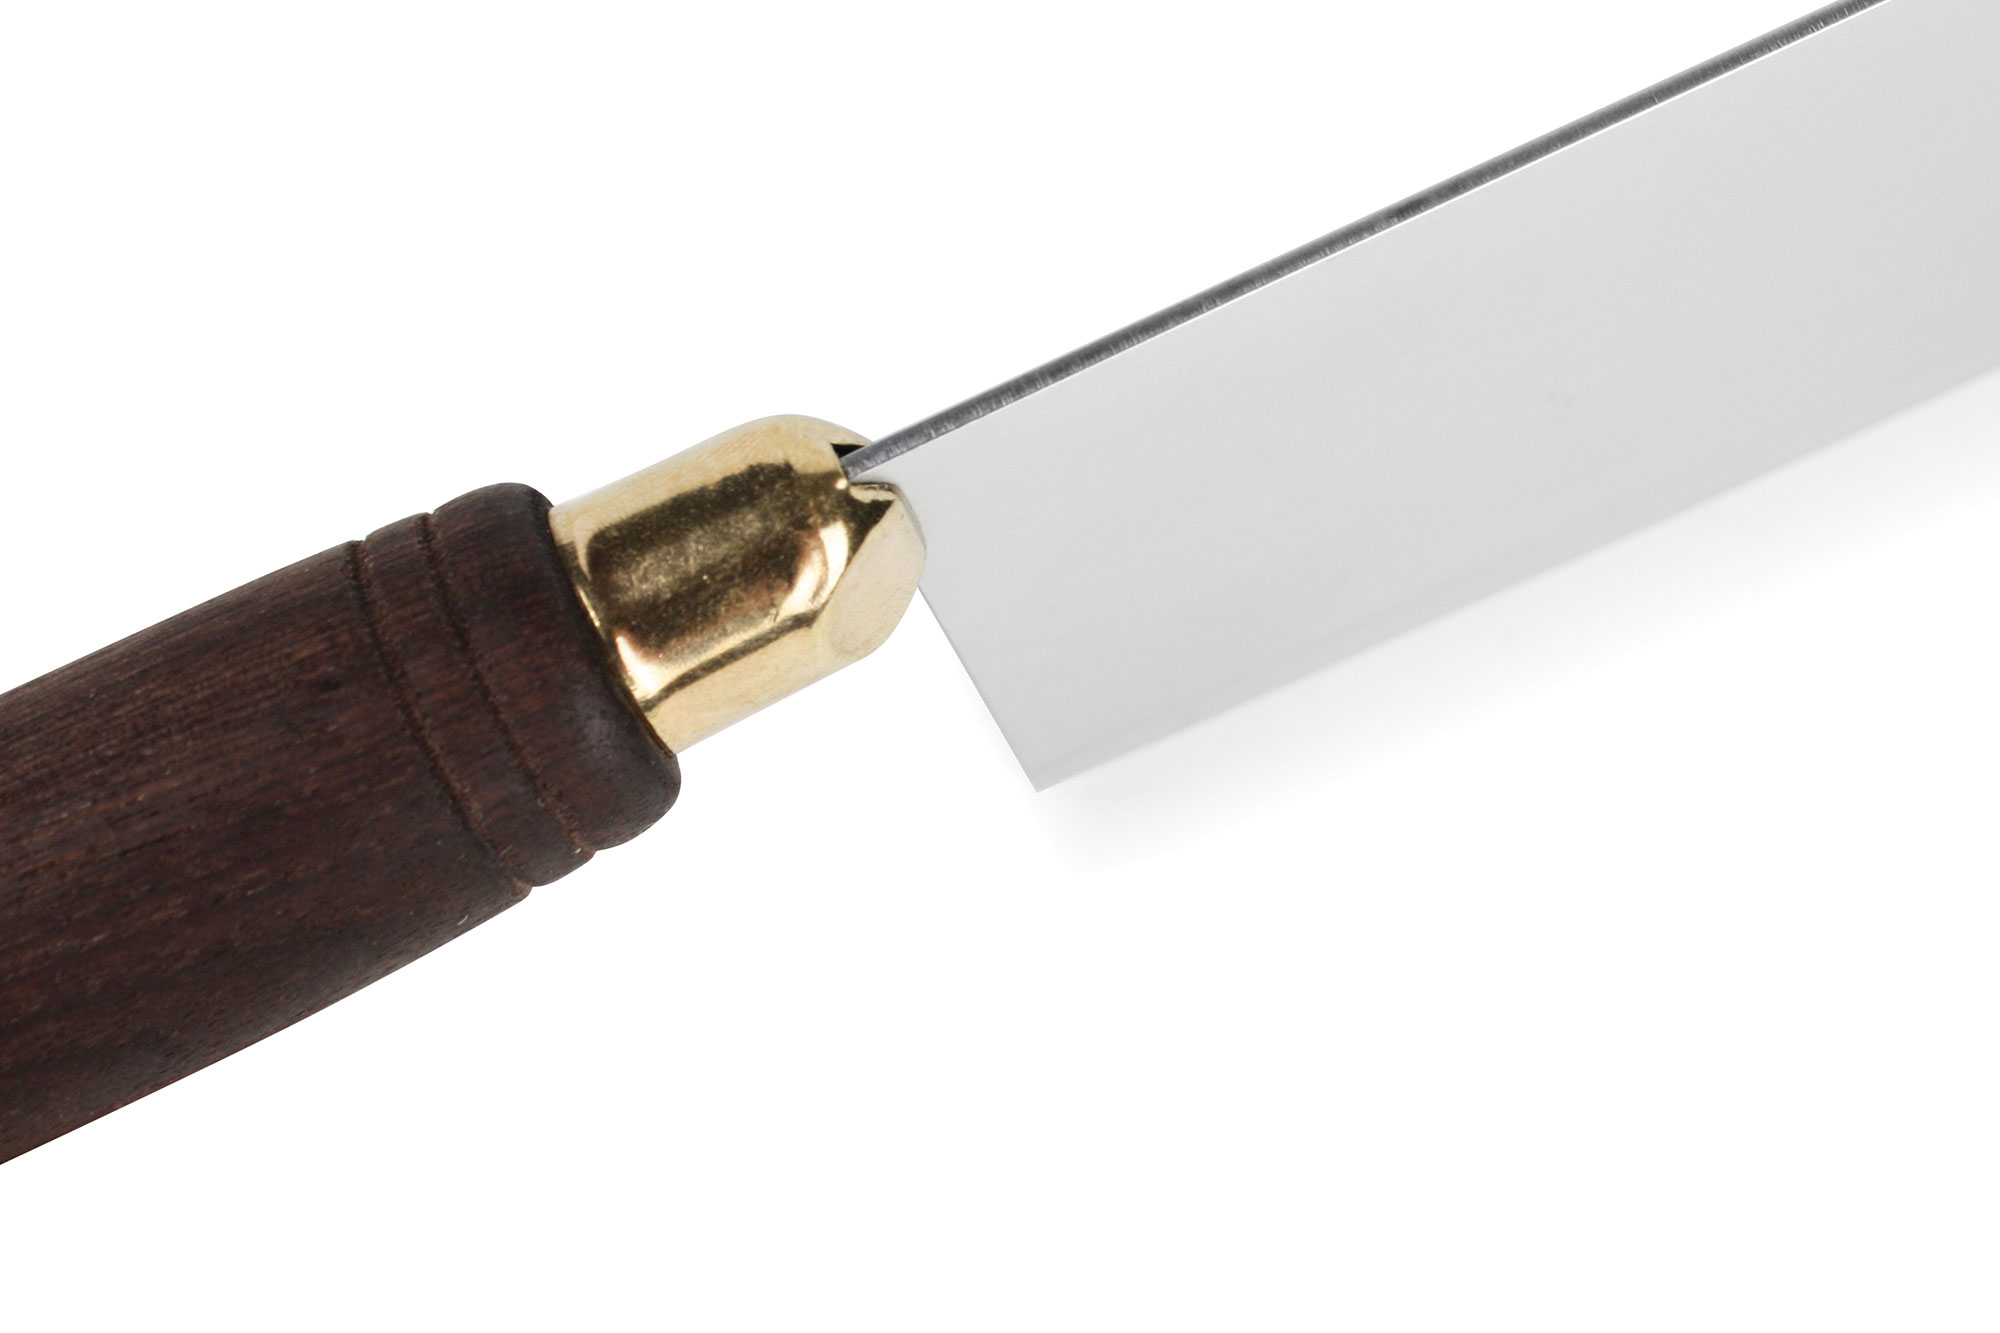 Lamson Chinese Vegetable Cleaver With Walnut Handle 8